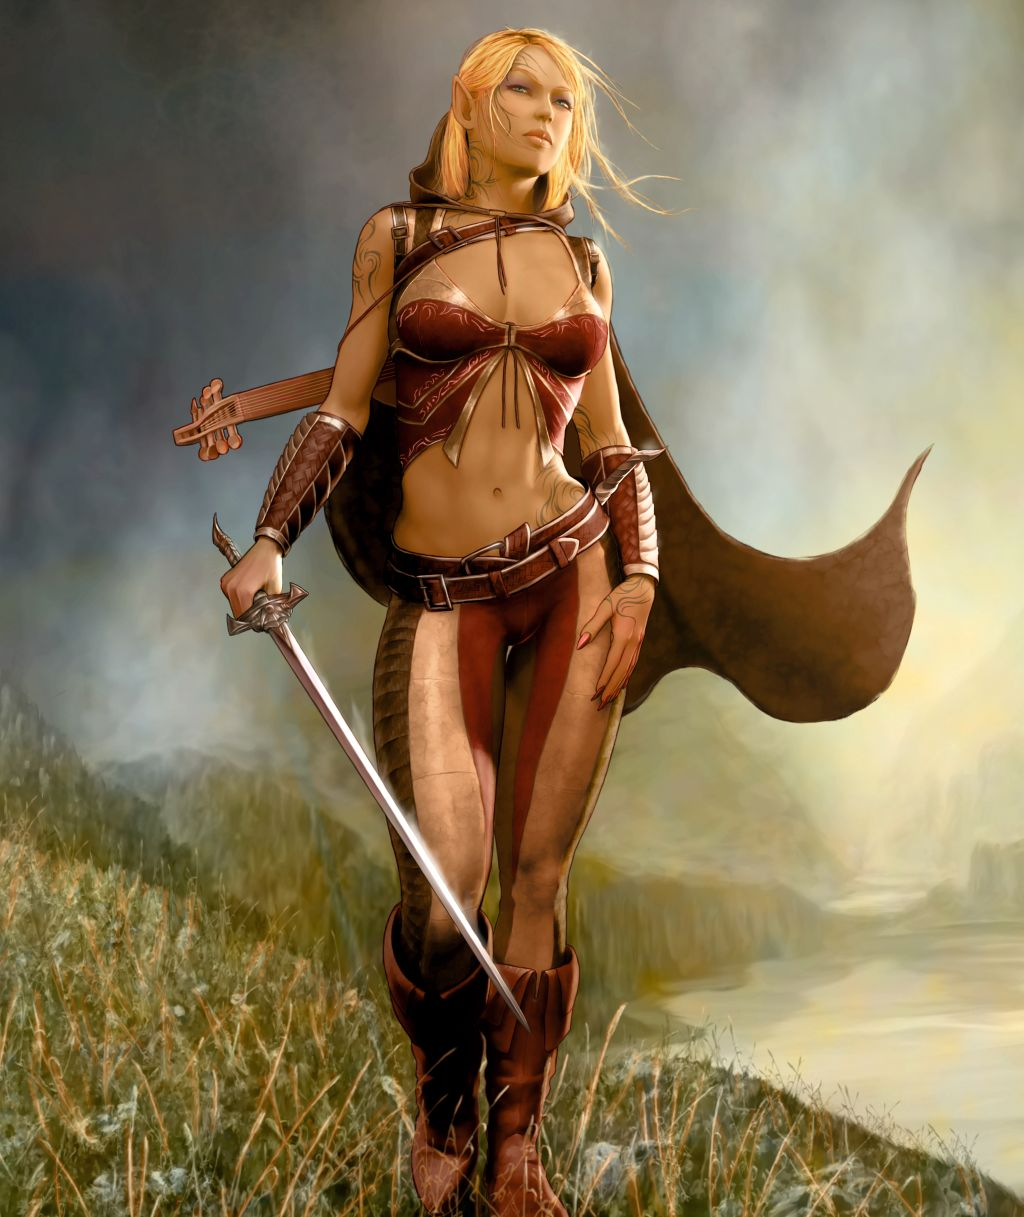 Dark elf pin-up 3d hentia gallery